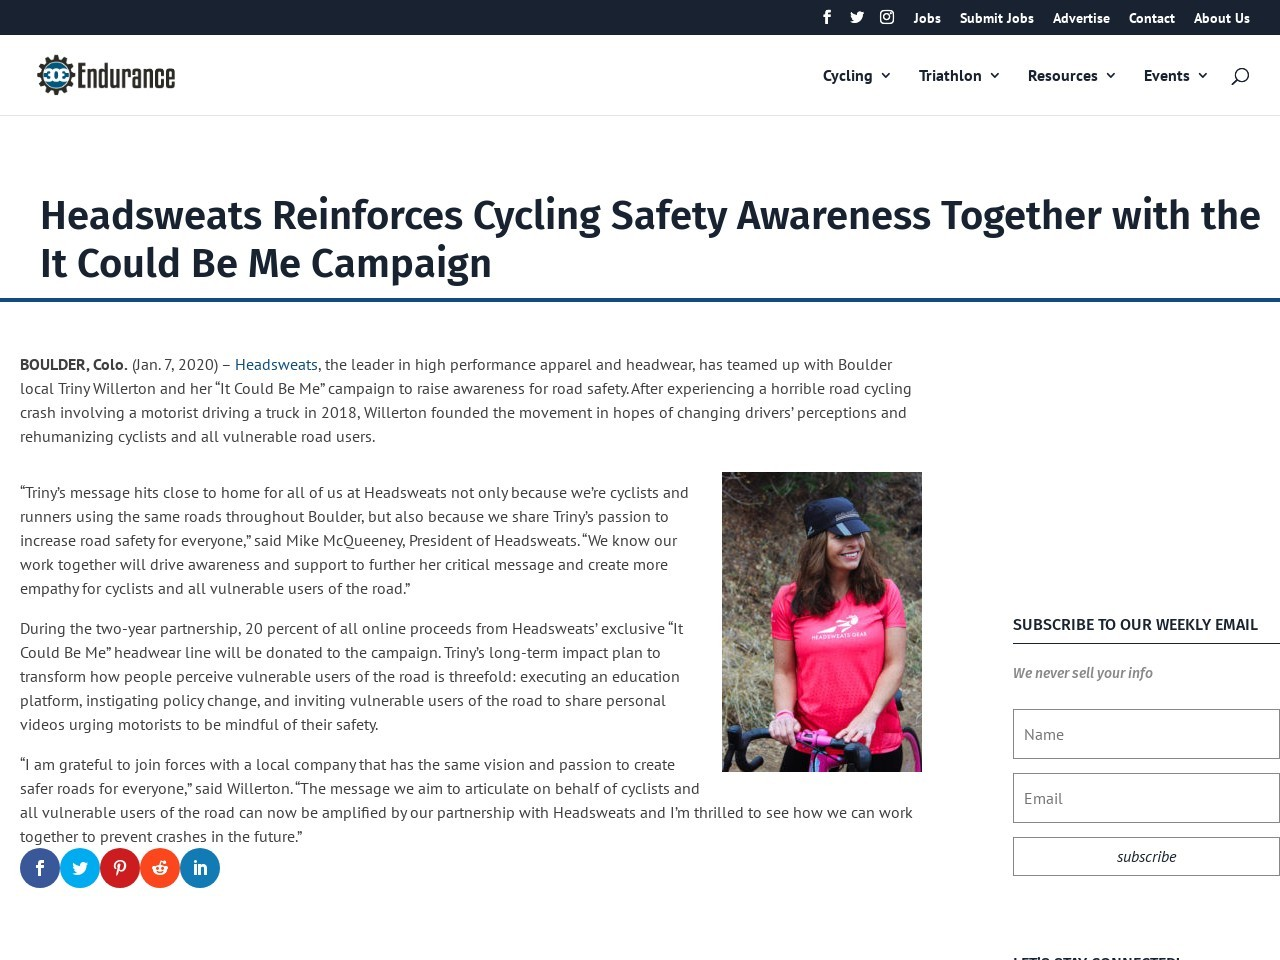 Headsweats Reinforces Cycling Safety Awareness Together with the It Could Be Me Campaign